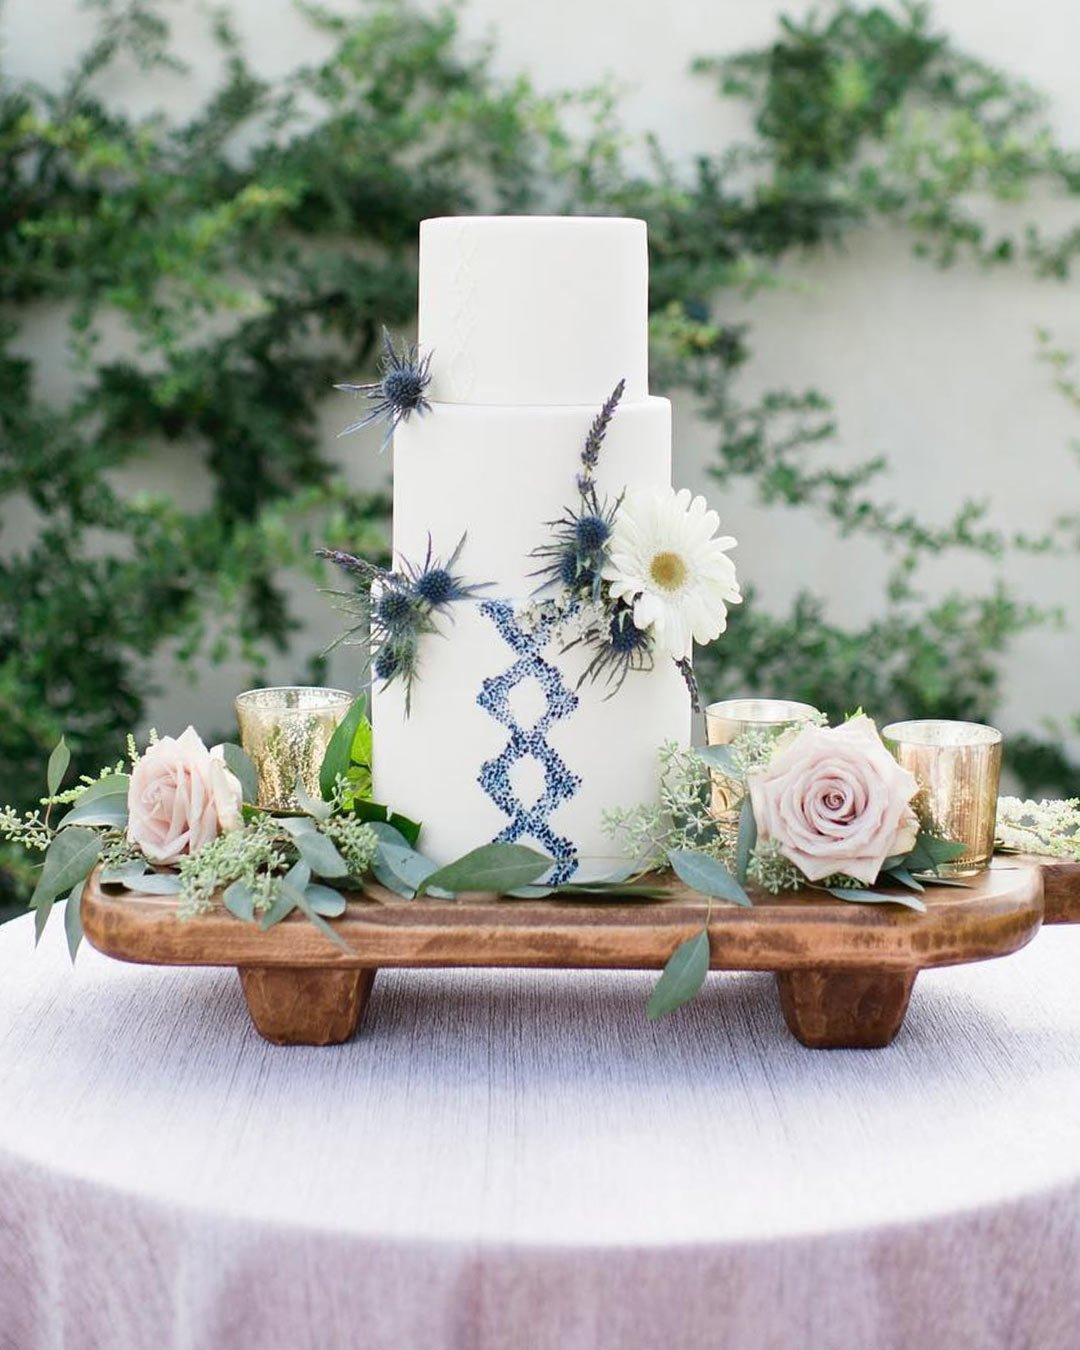 rustic wedding ideas greenery flowers cake pattern